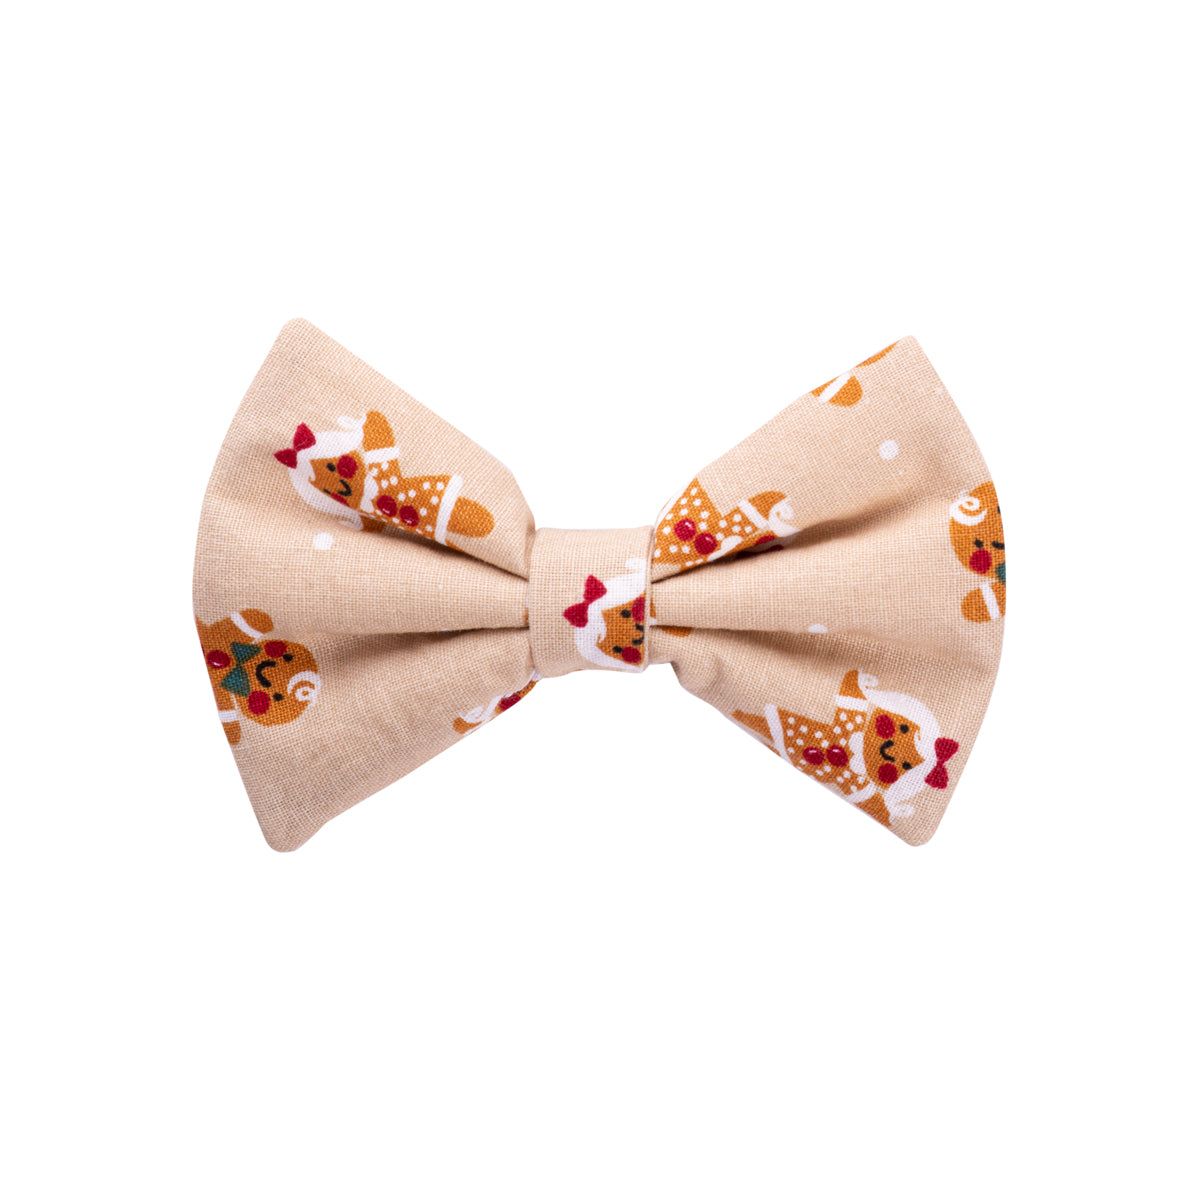 Gingerbread People Bows